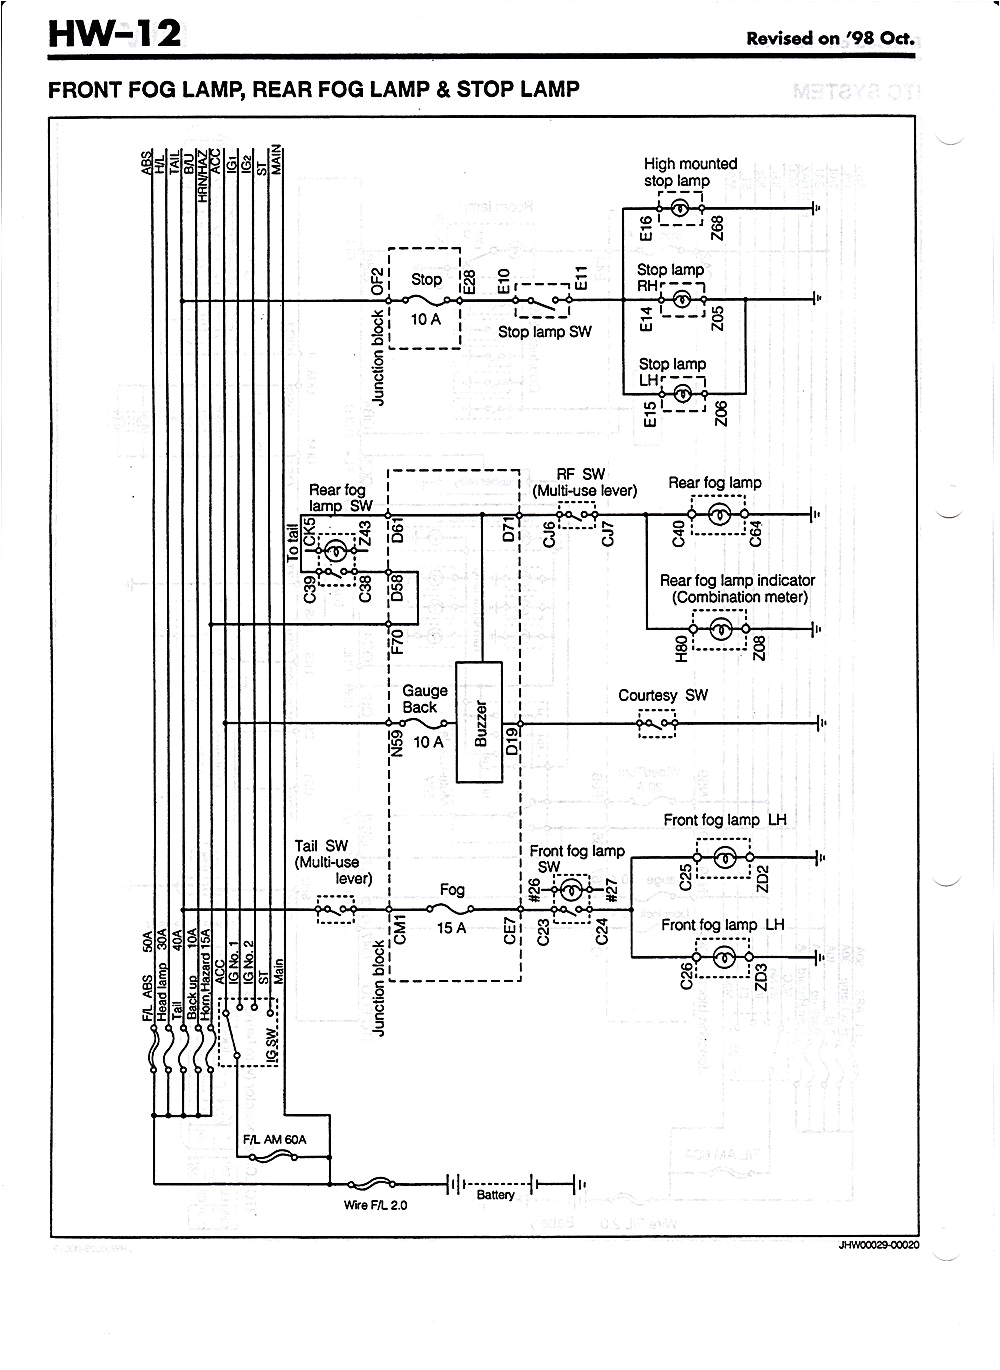 wiring diagram for daihatsu terios wiring diagram name daihatsu terios wiring diagram pdf daihatsu terios 2004